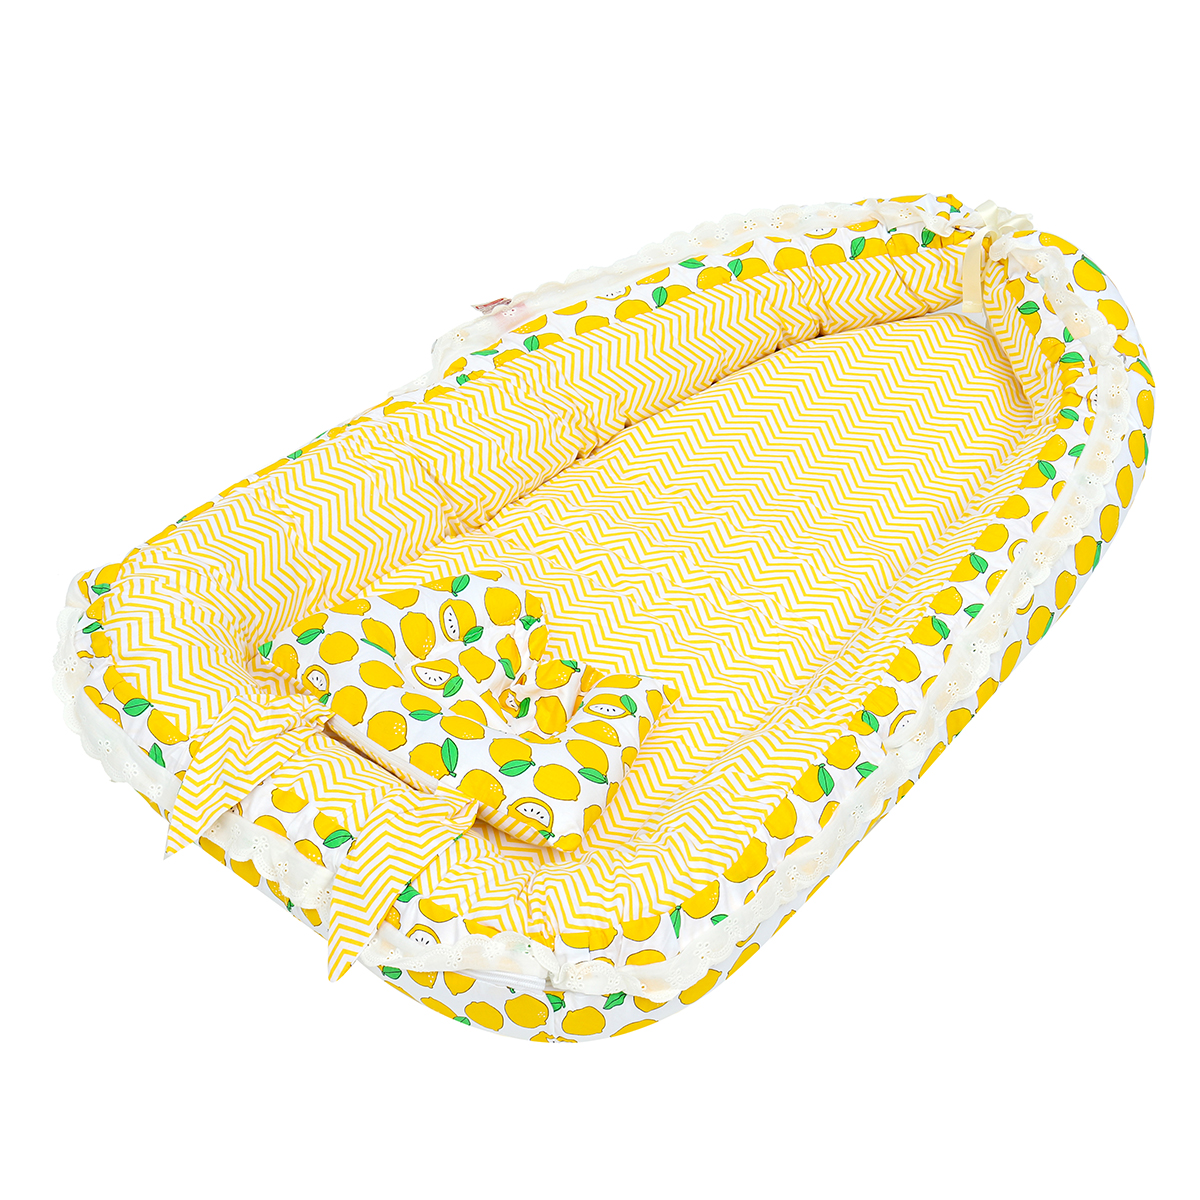 Portable Folding Bed Baby Pillow Sleep Cushion Cot Crib Newborn Nest Bed Mattress Breathable